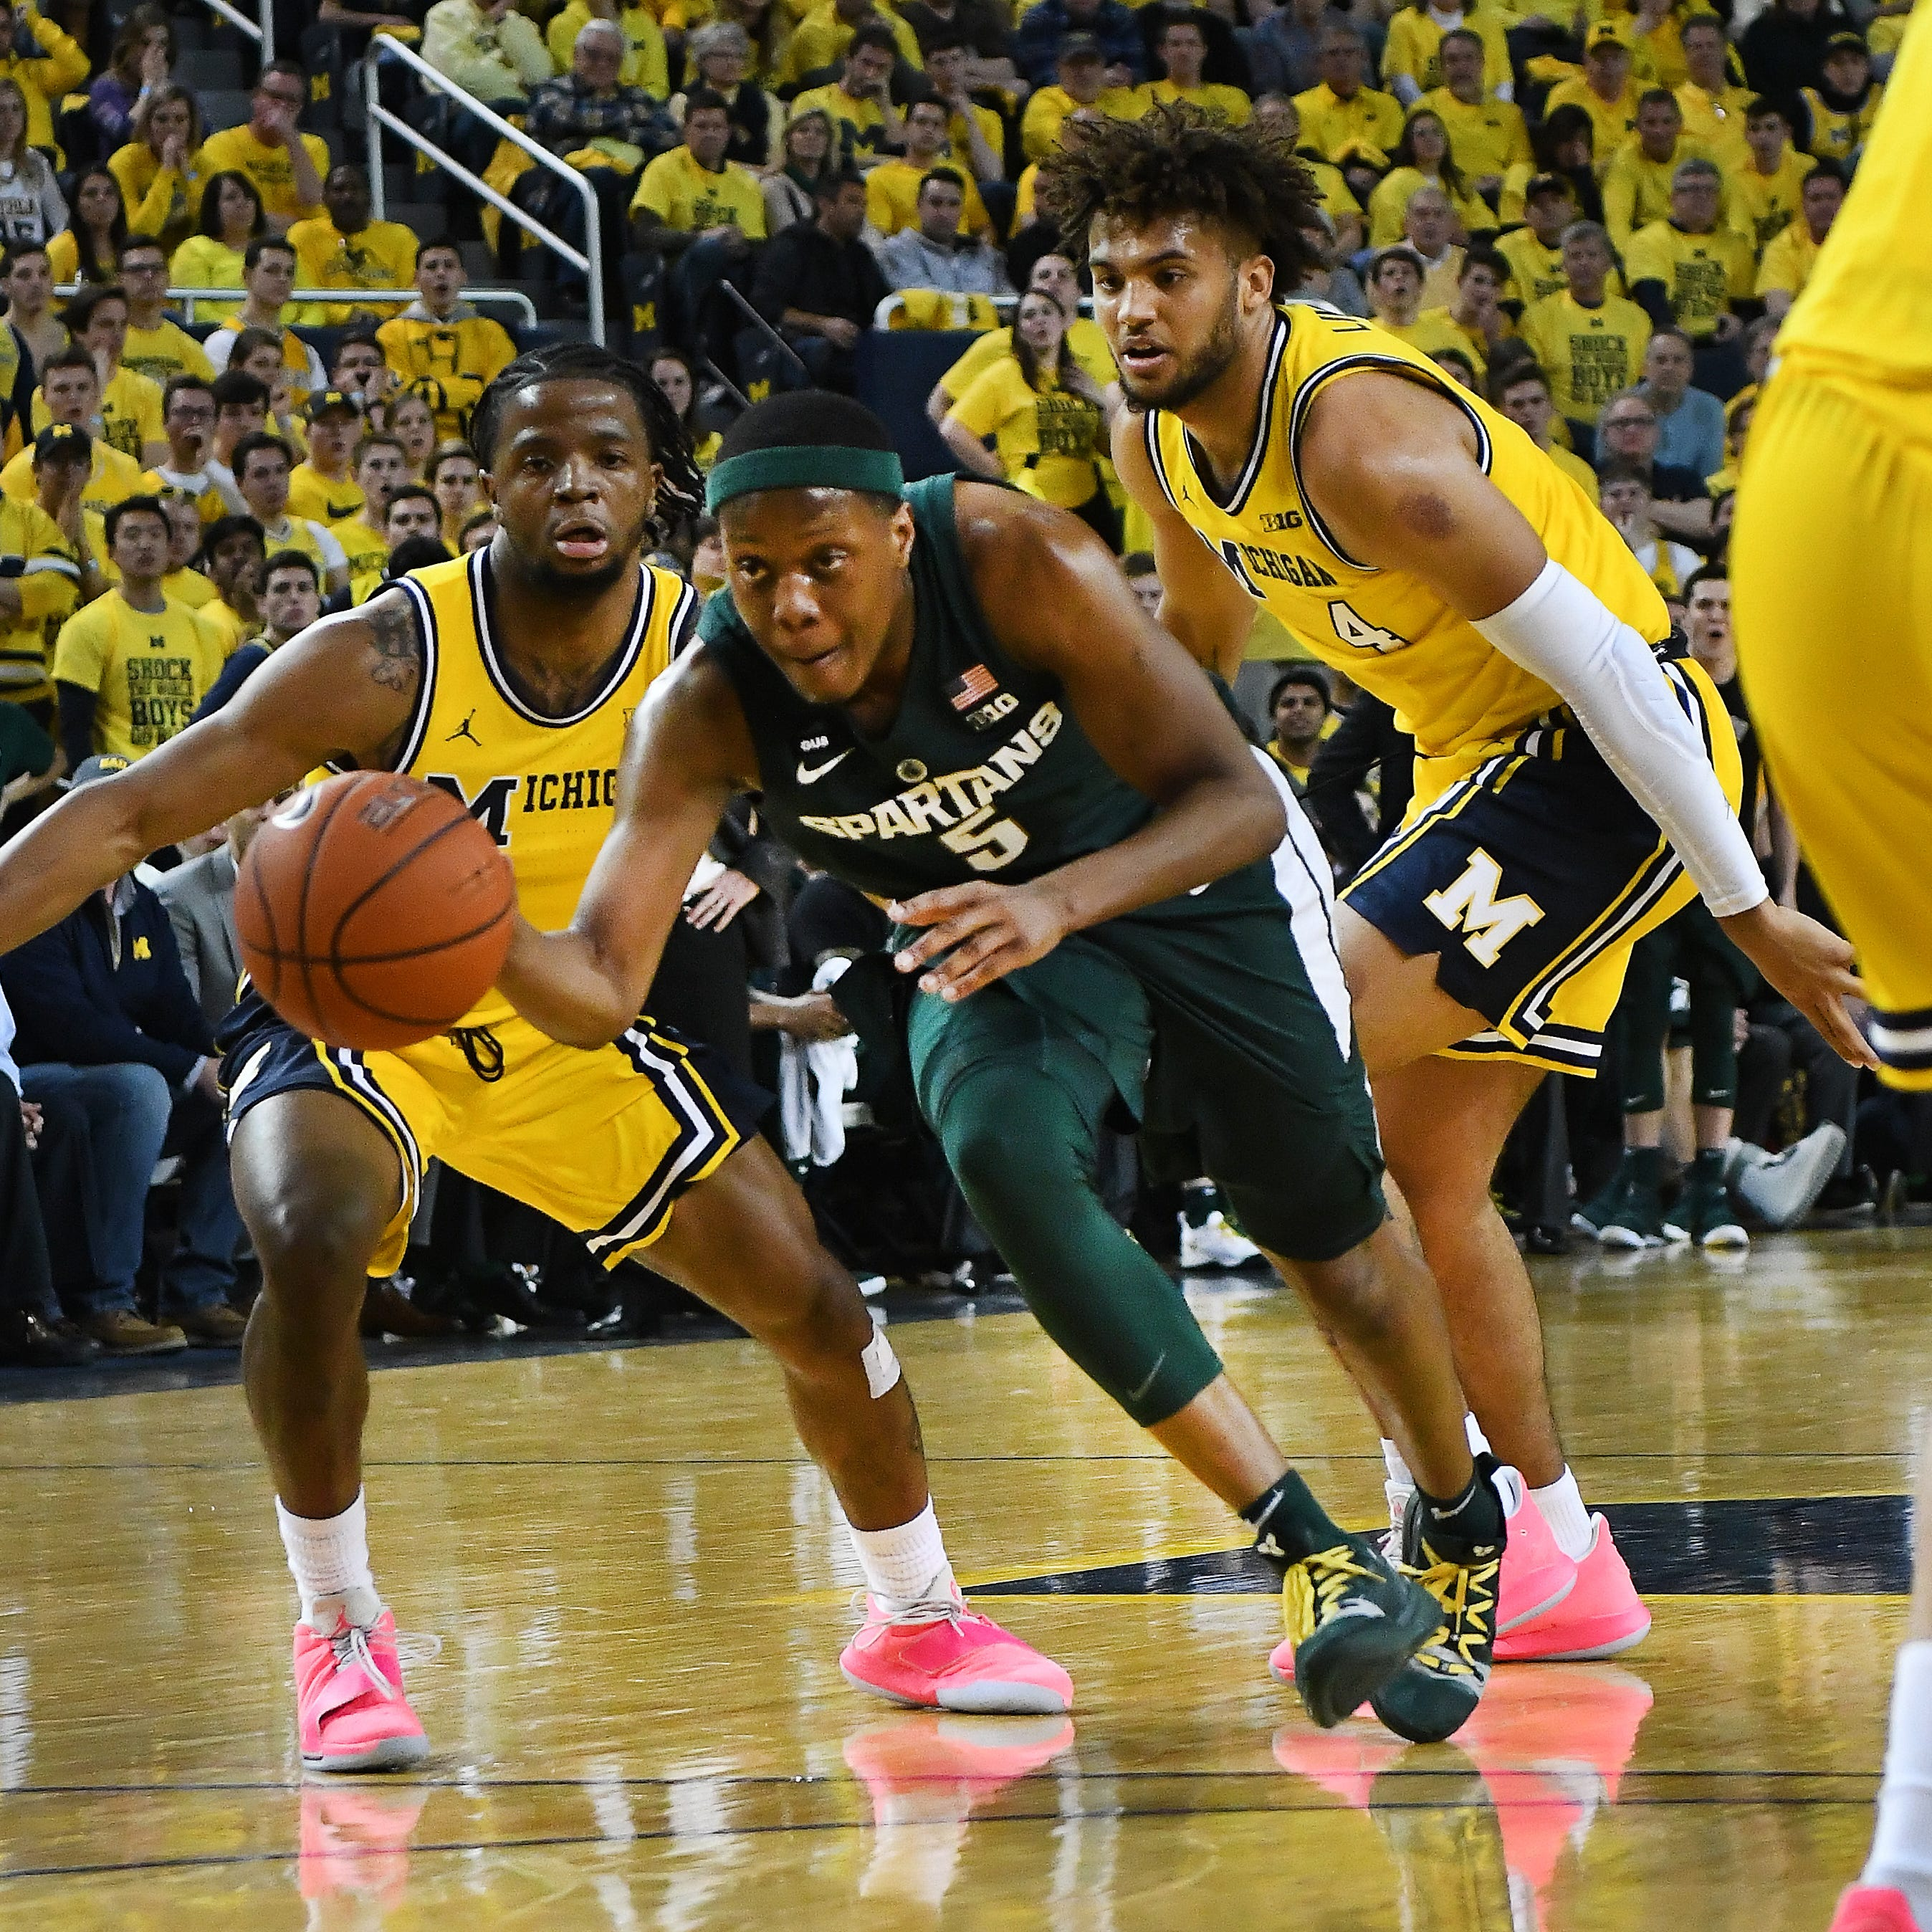 Michigan at Michigan State: Who has the edge?